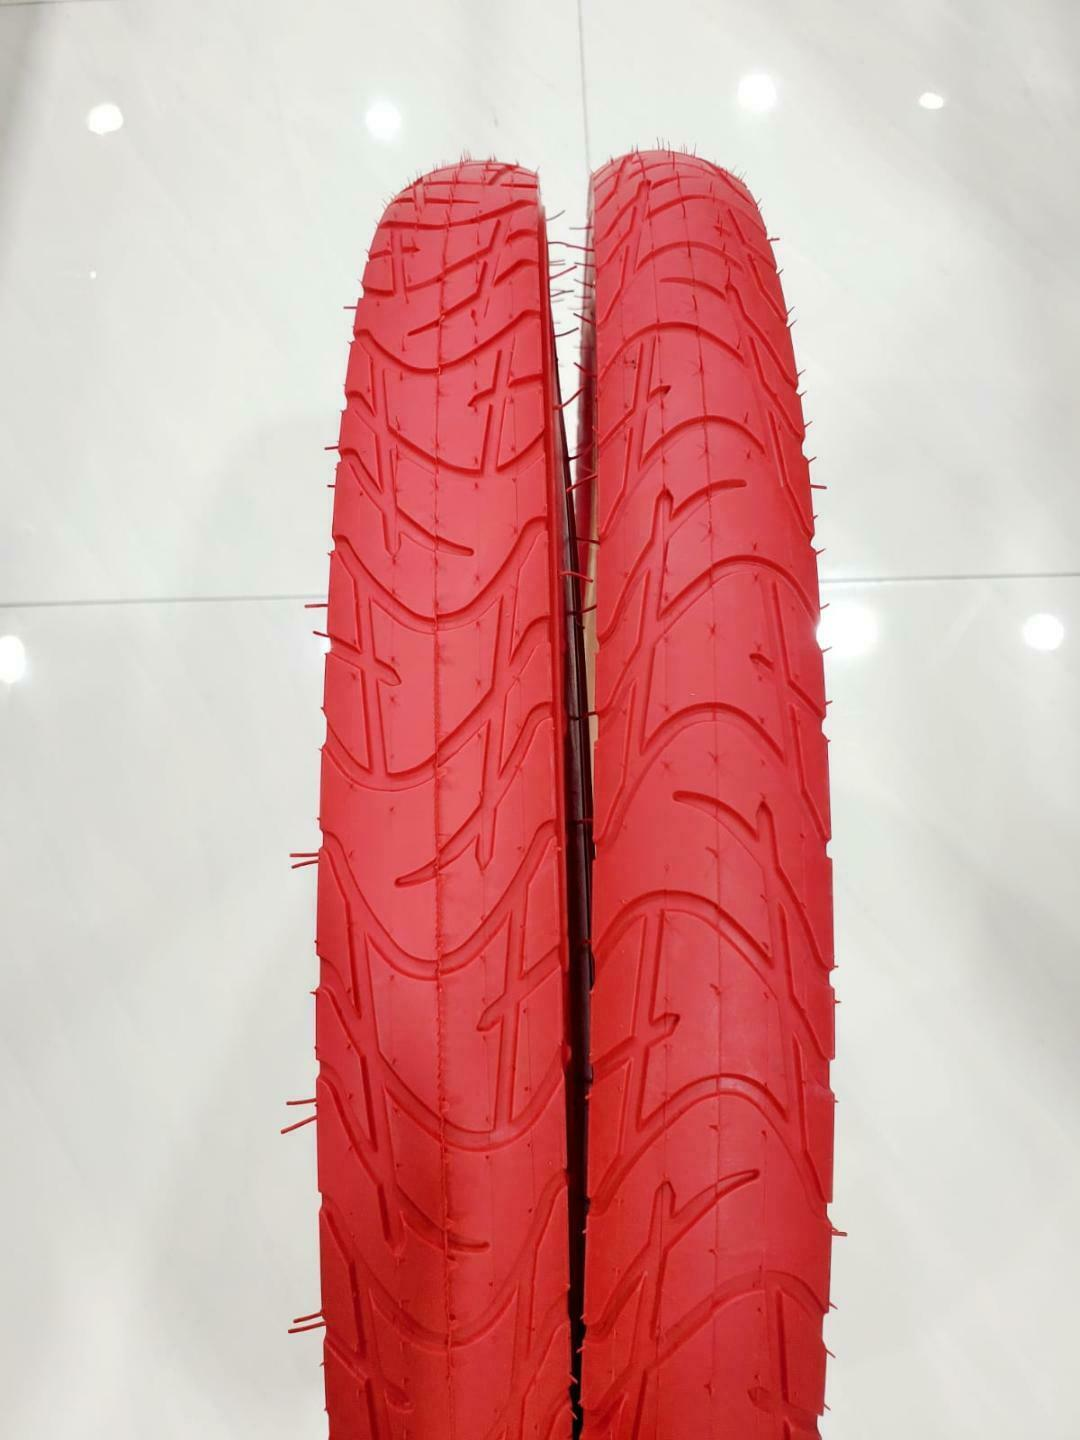 26 x 2.125 TWO HIGH QUALITY RED STREET DESIGN  TIRES AND  2 INNER TUBES 57-559